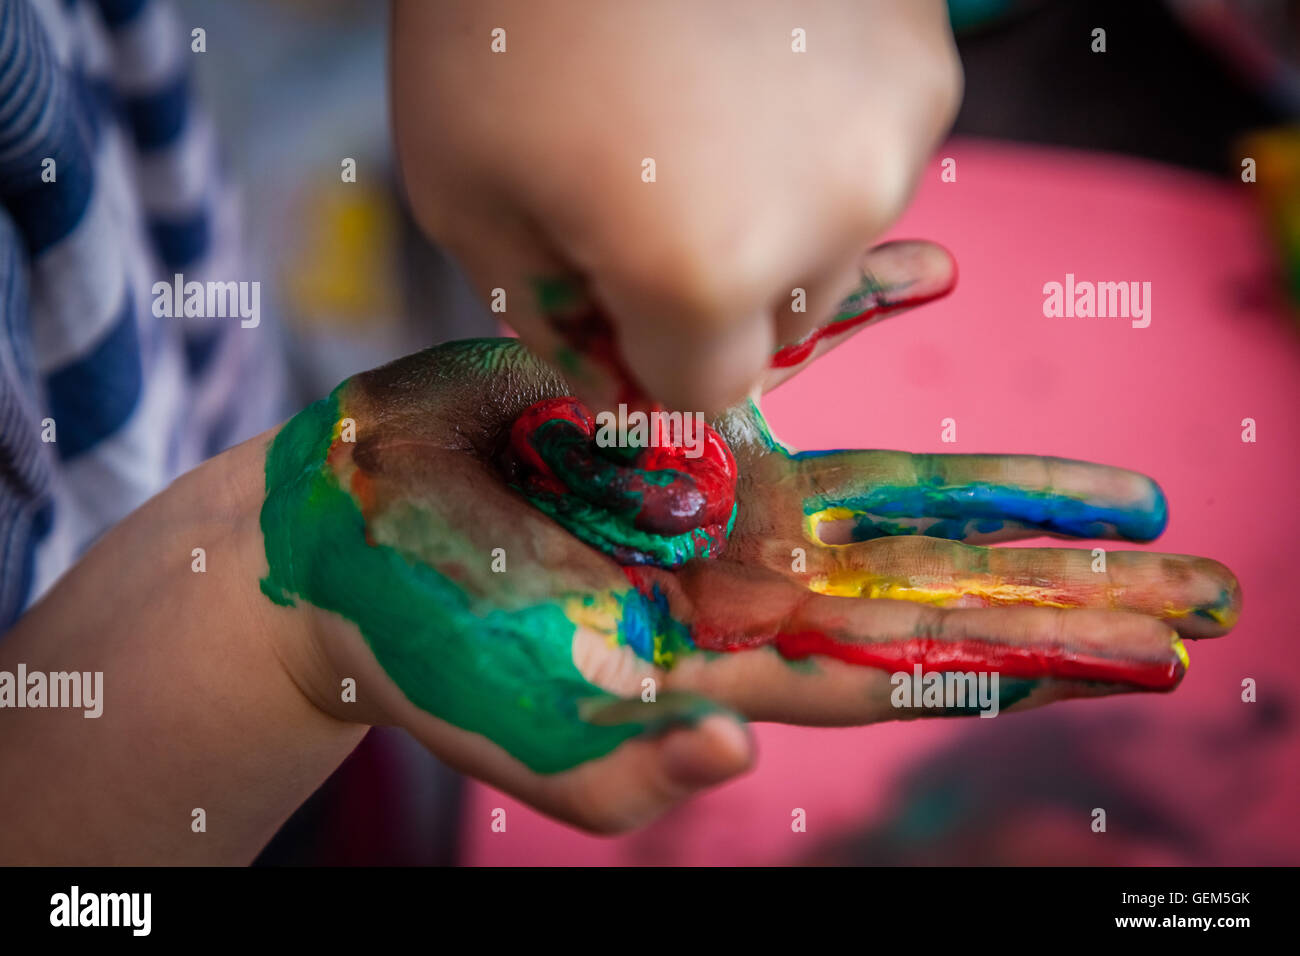 Child extracting more paint from the tube on his or her hand, already dirty from many colors - Stock Image